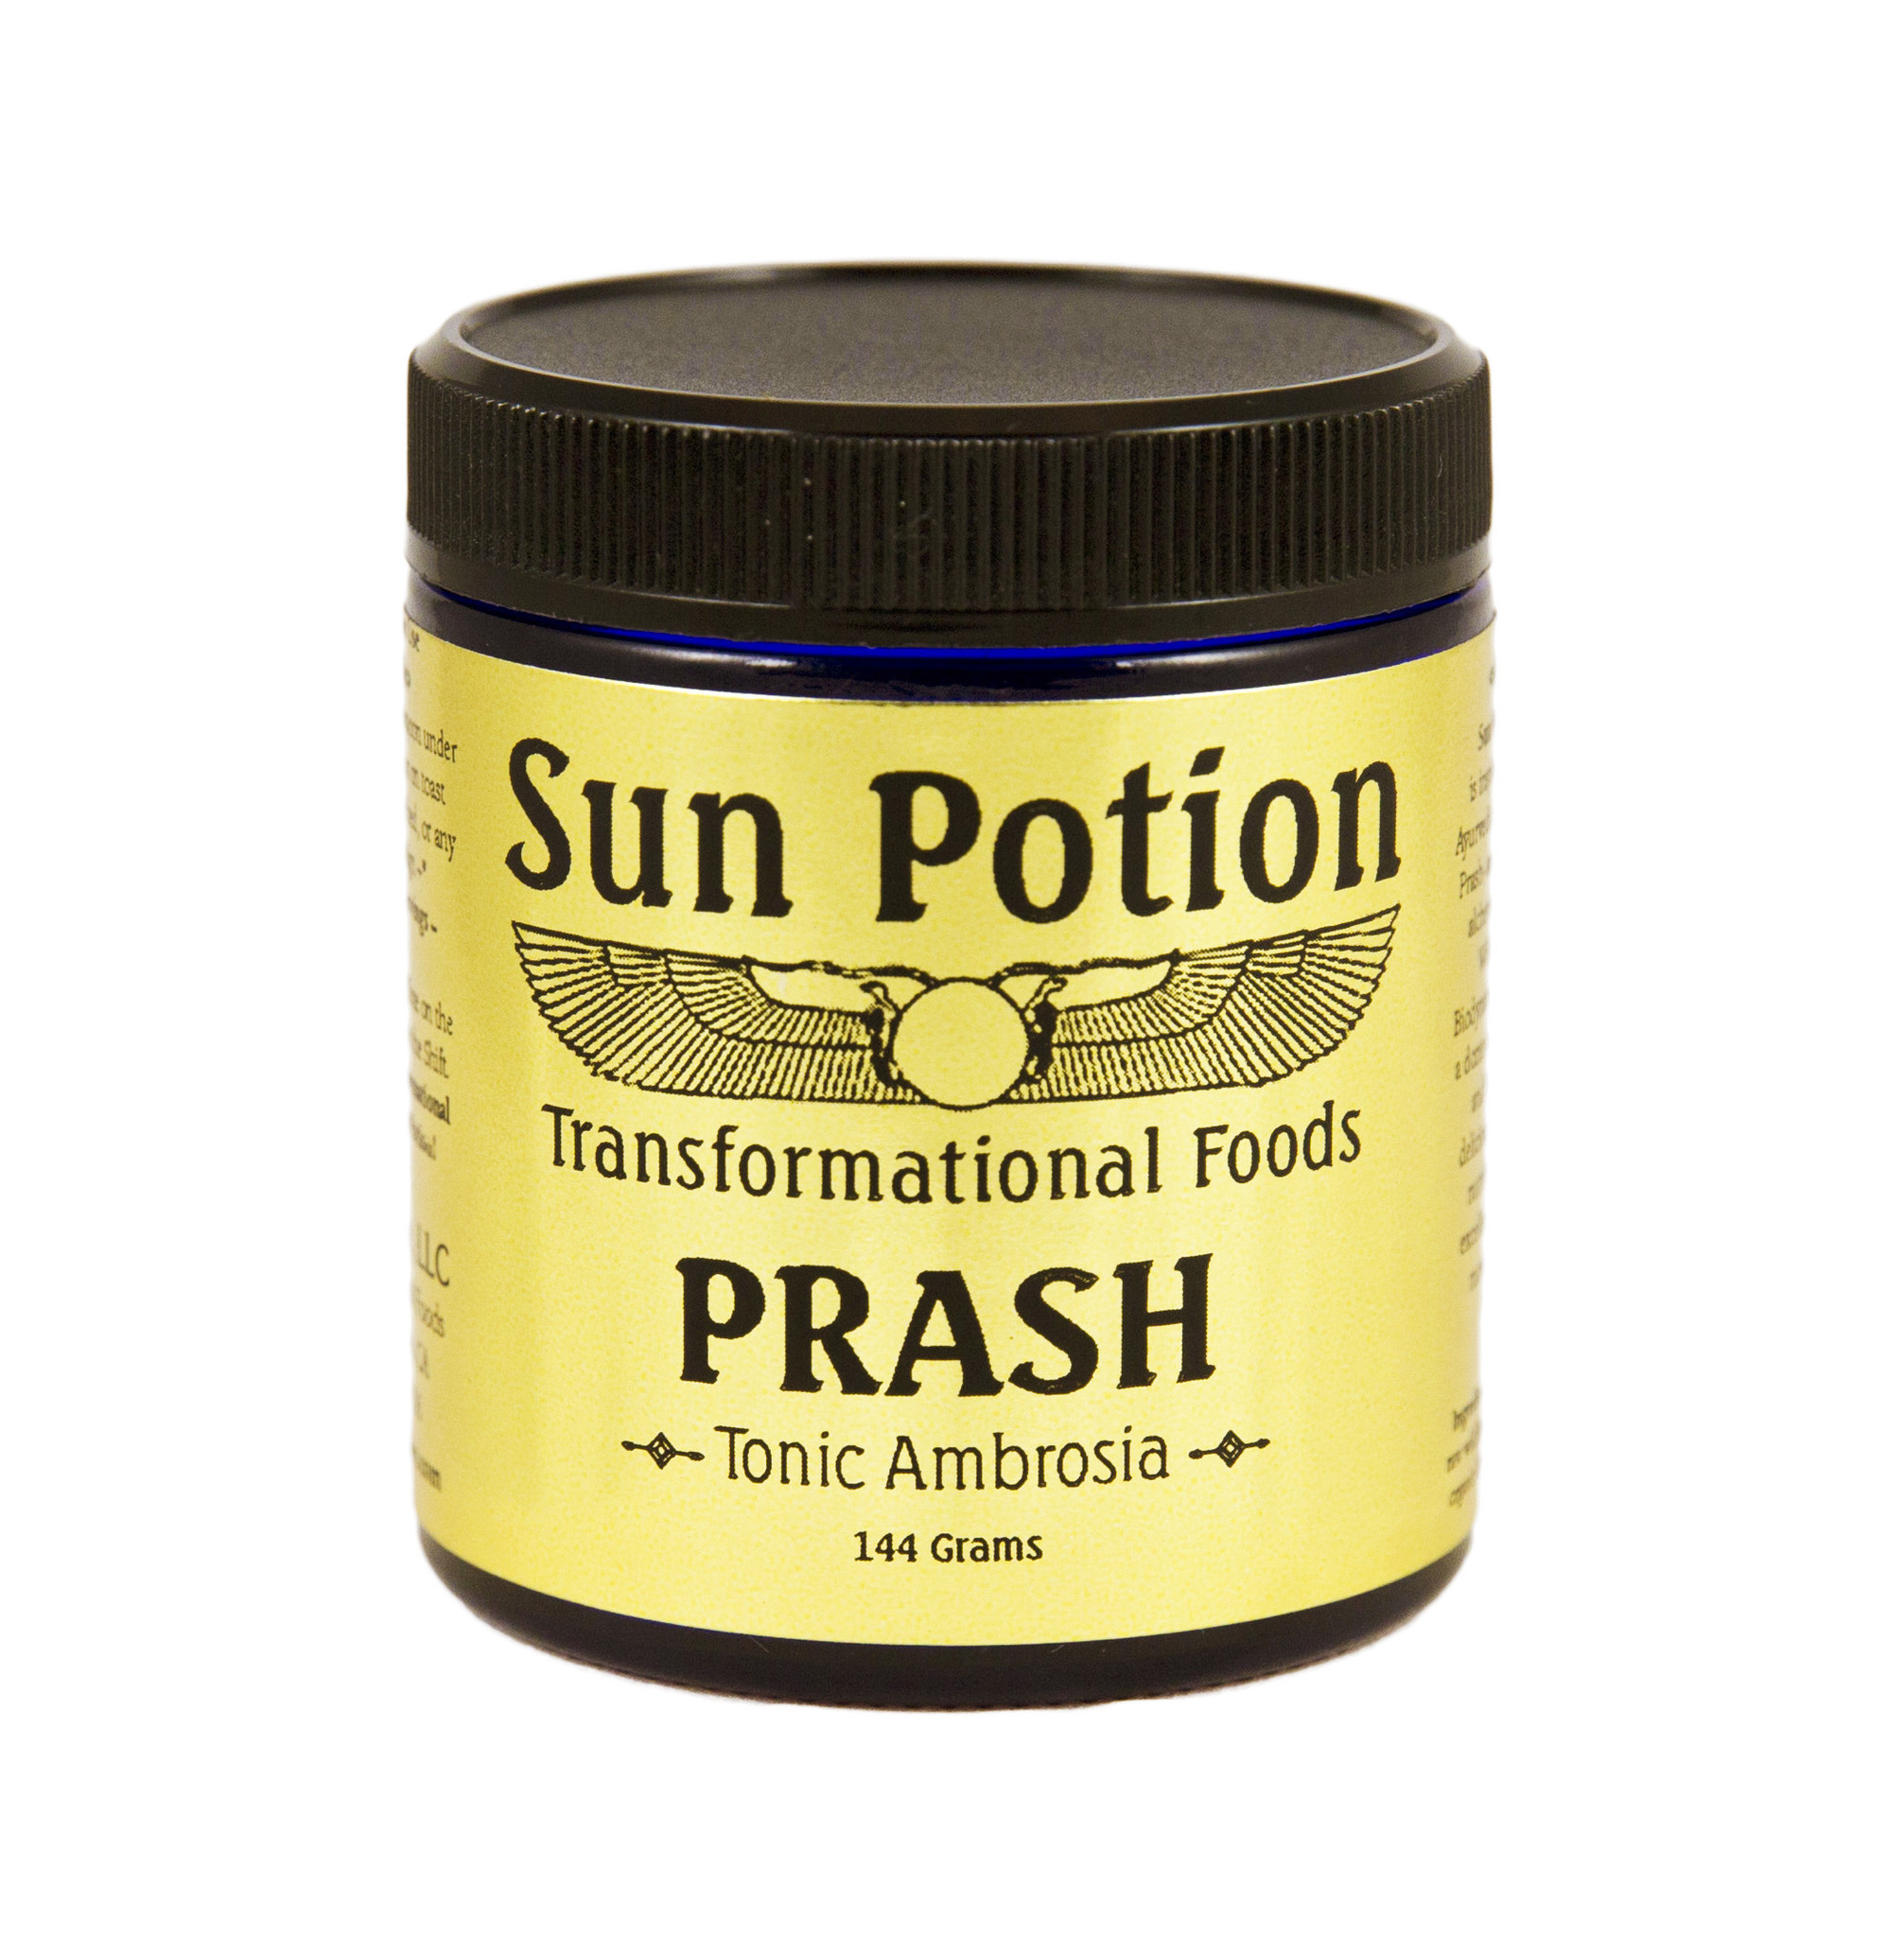 sun potion prash